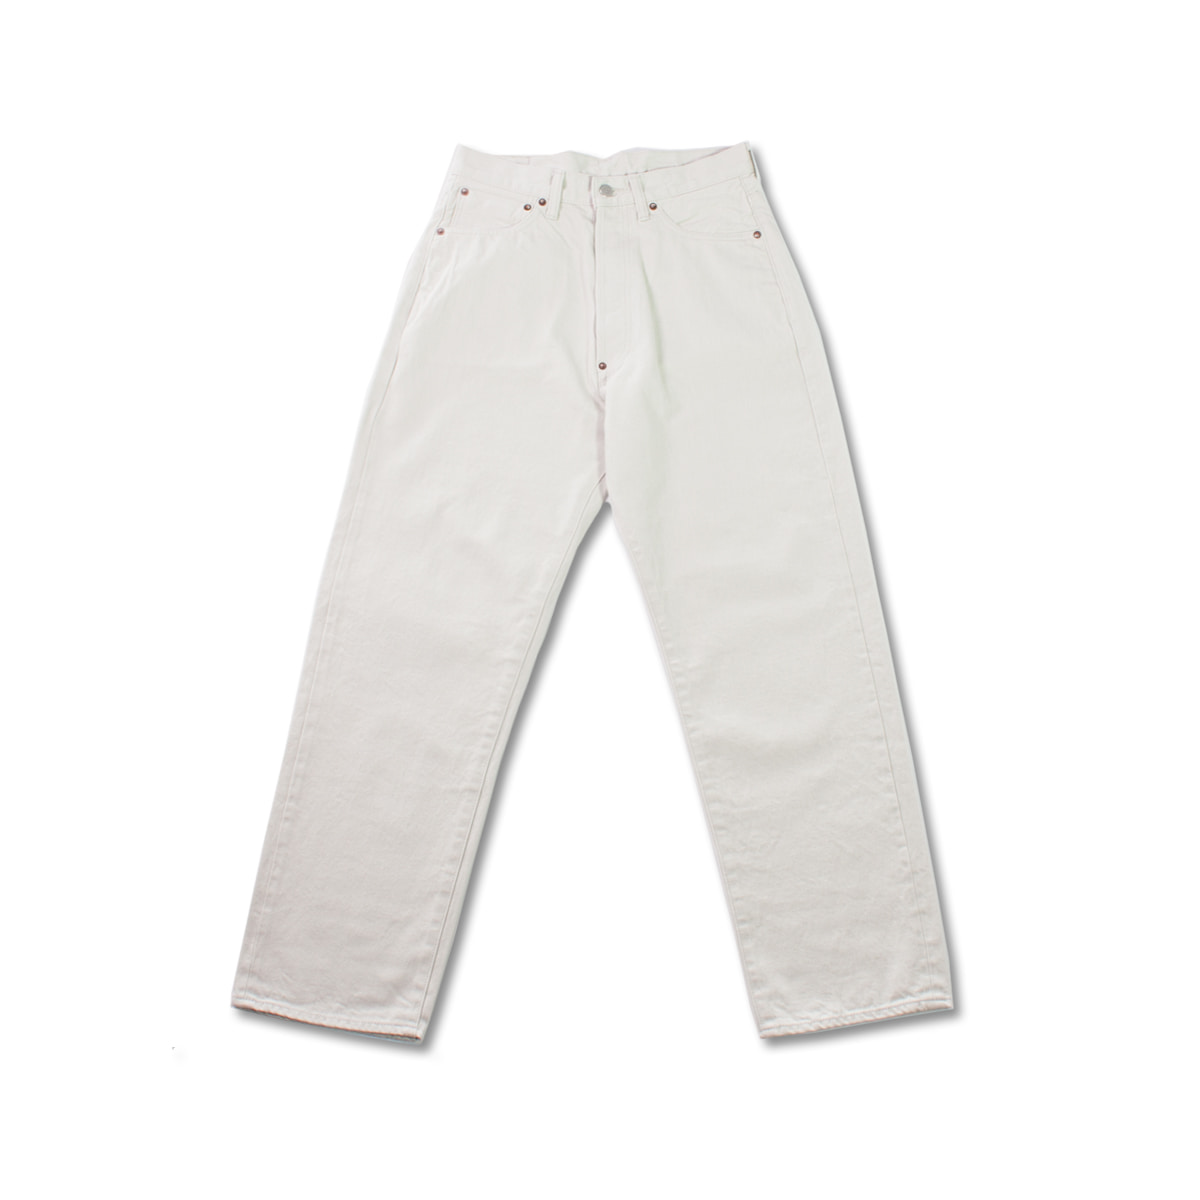 [ORDINARY FITS] NEW FARMERS 5P DENIM(20) 'WHITE'